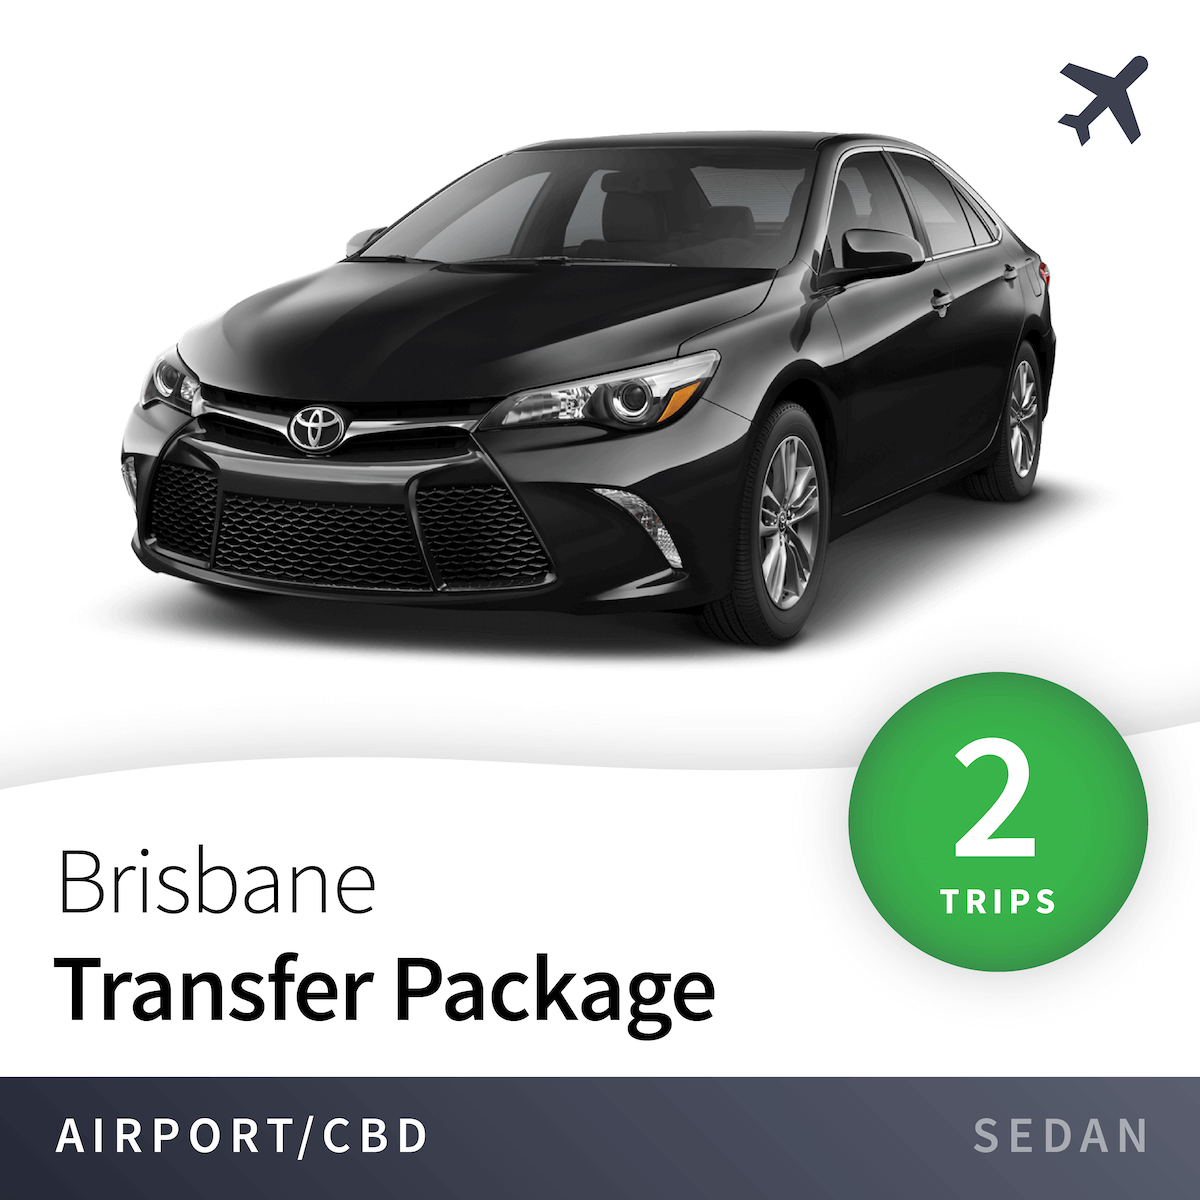 Brisbane Airport Transfer Package - Sedan (2 Trips) 19